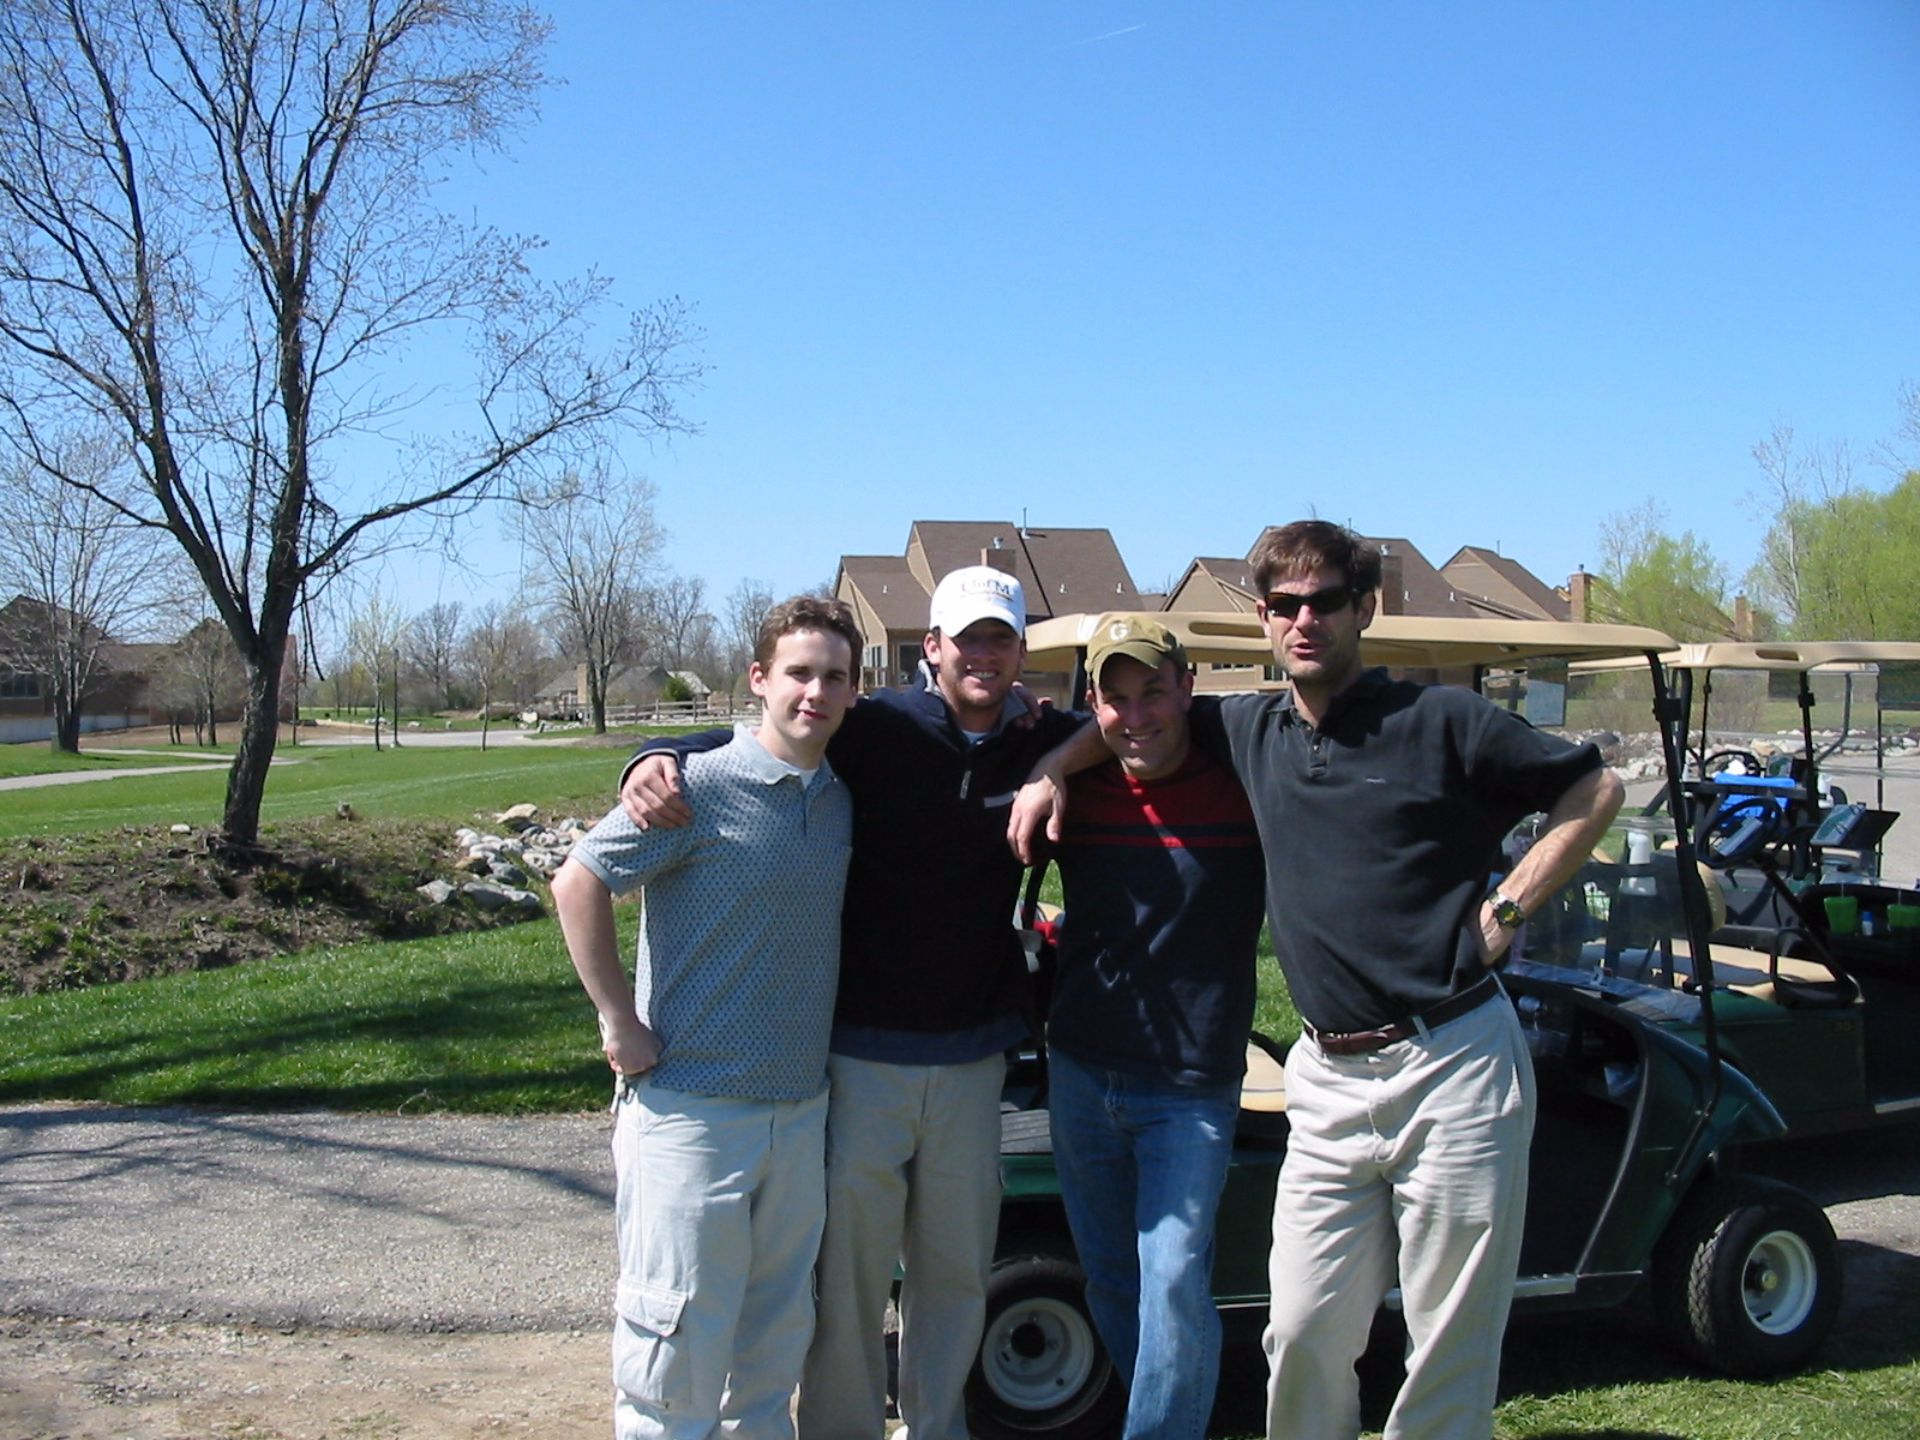 golf_outing_104-0419_IMG.jpg